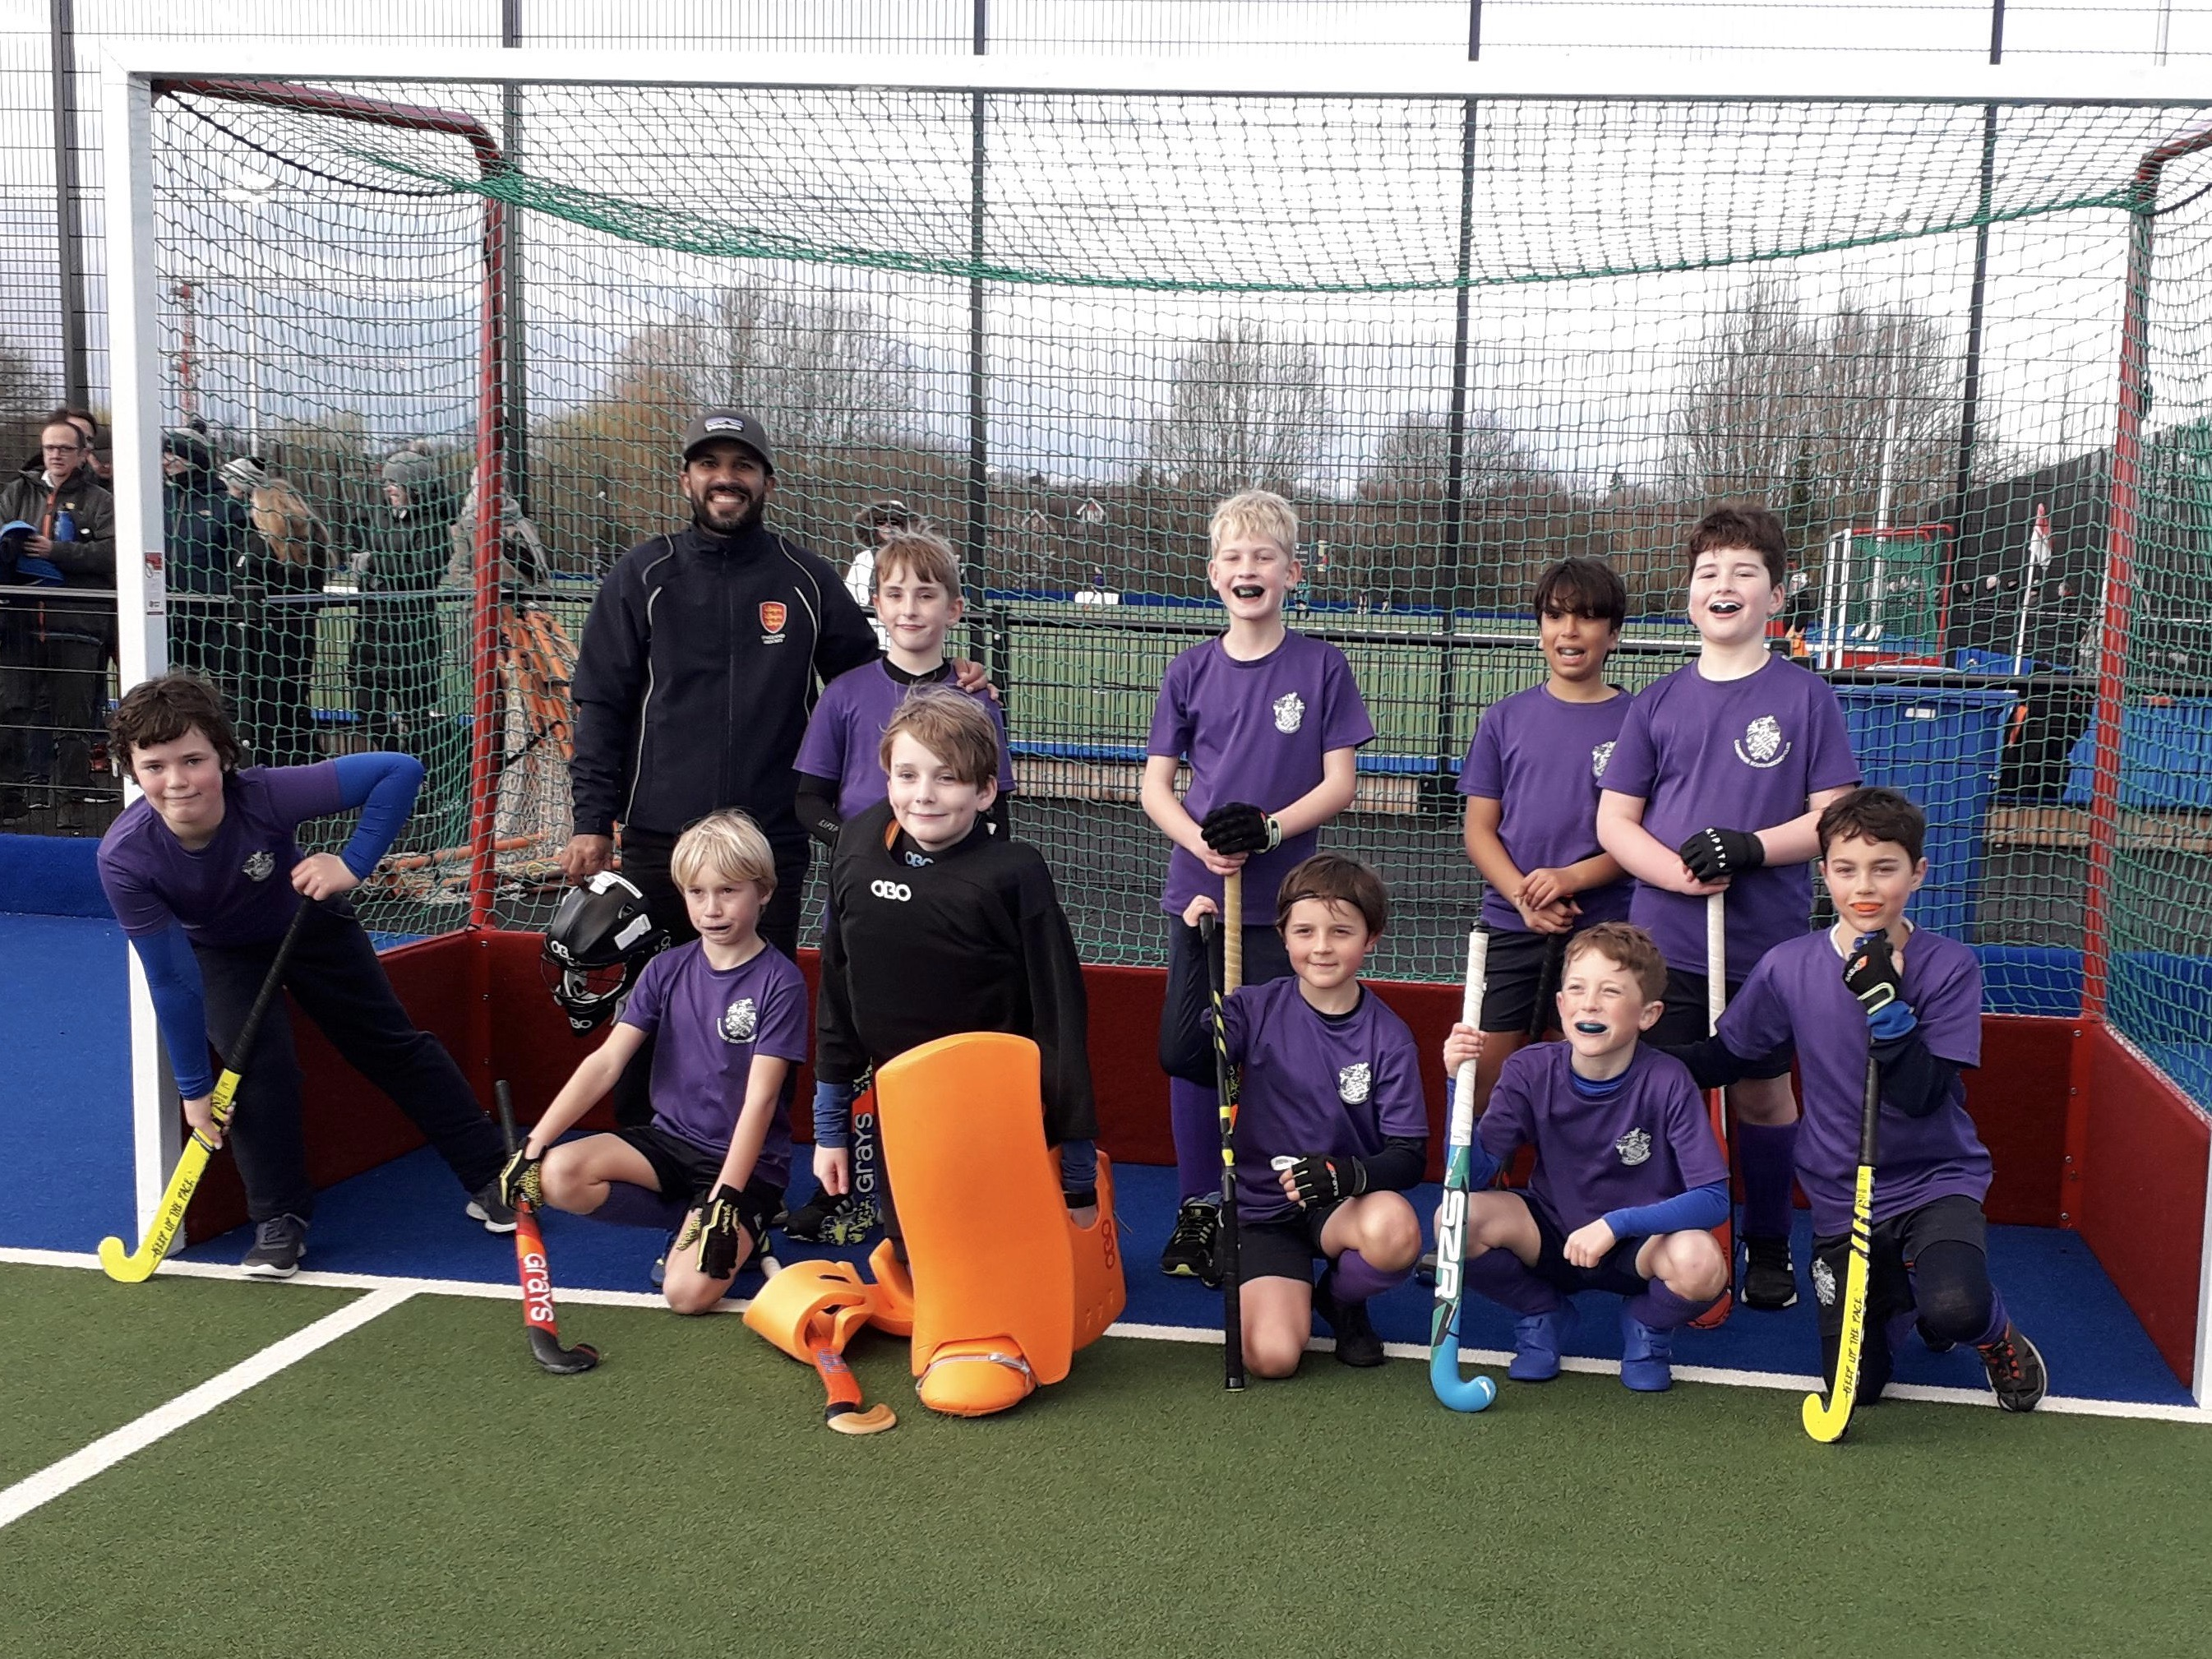 South's triumphant Boys' U10s after a great day's hockey